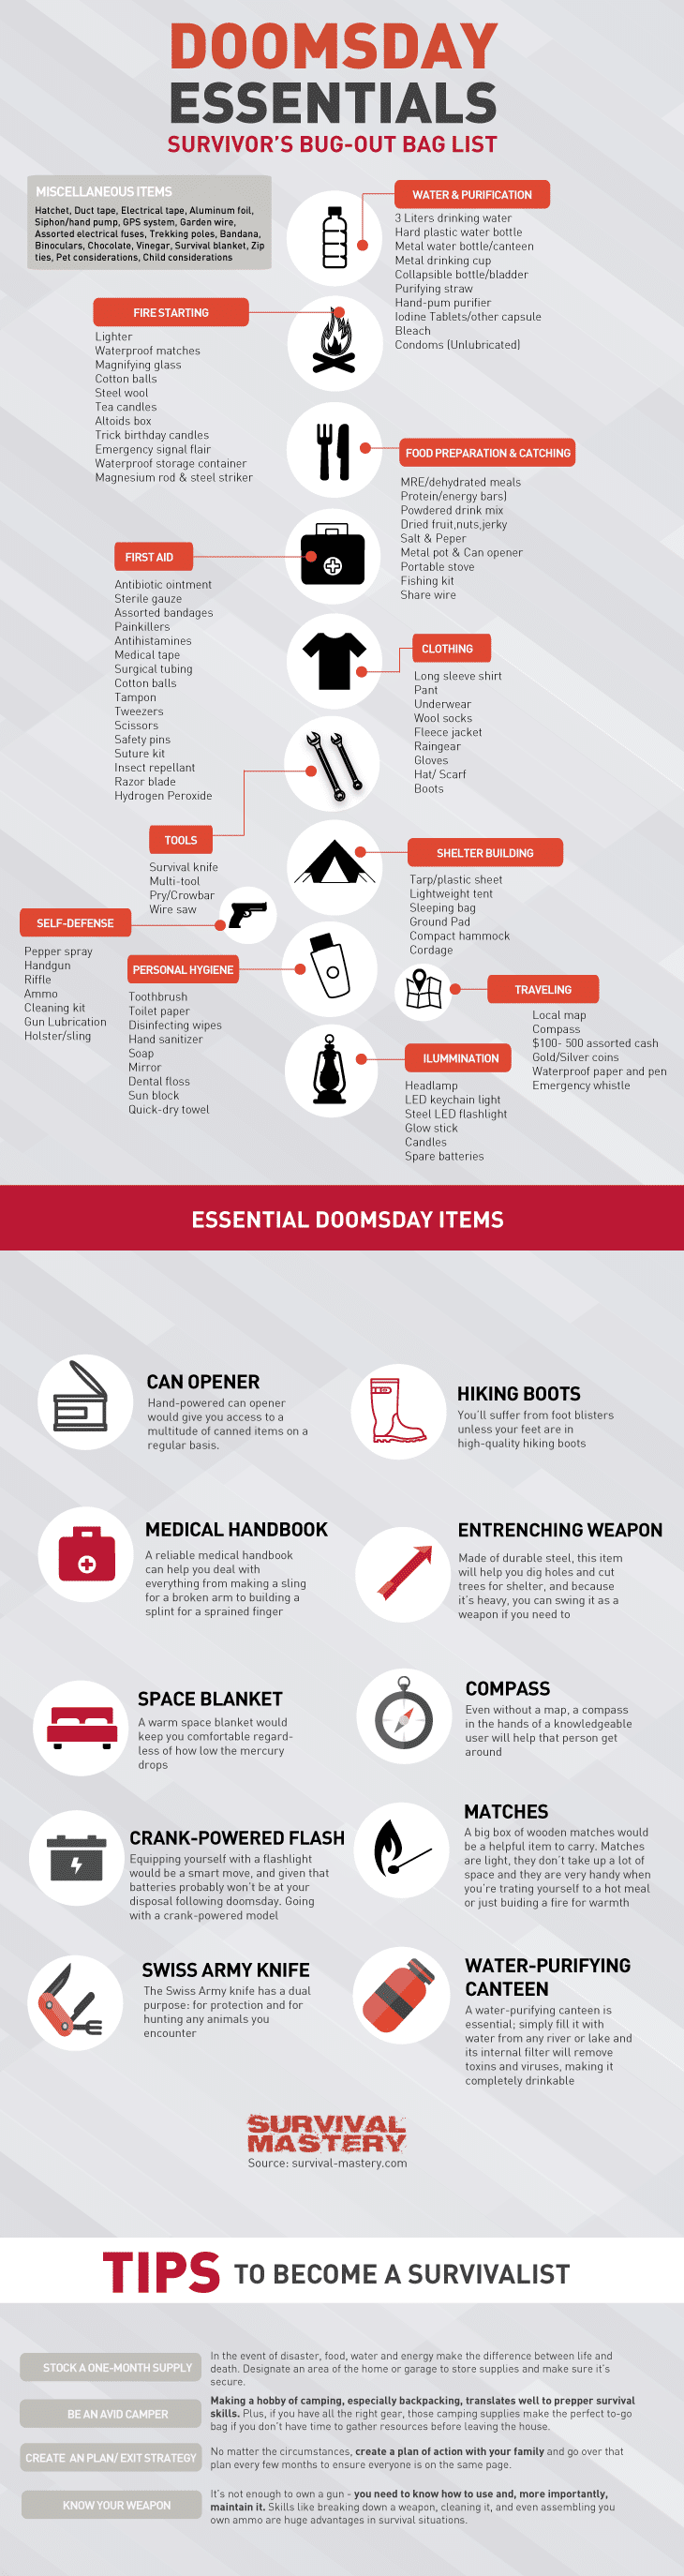 Doomsday essentials infographic